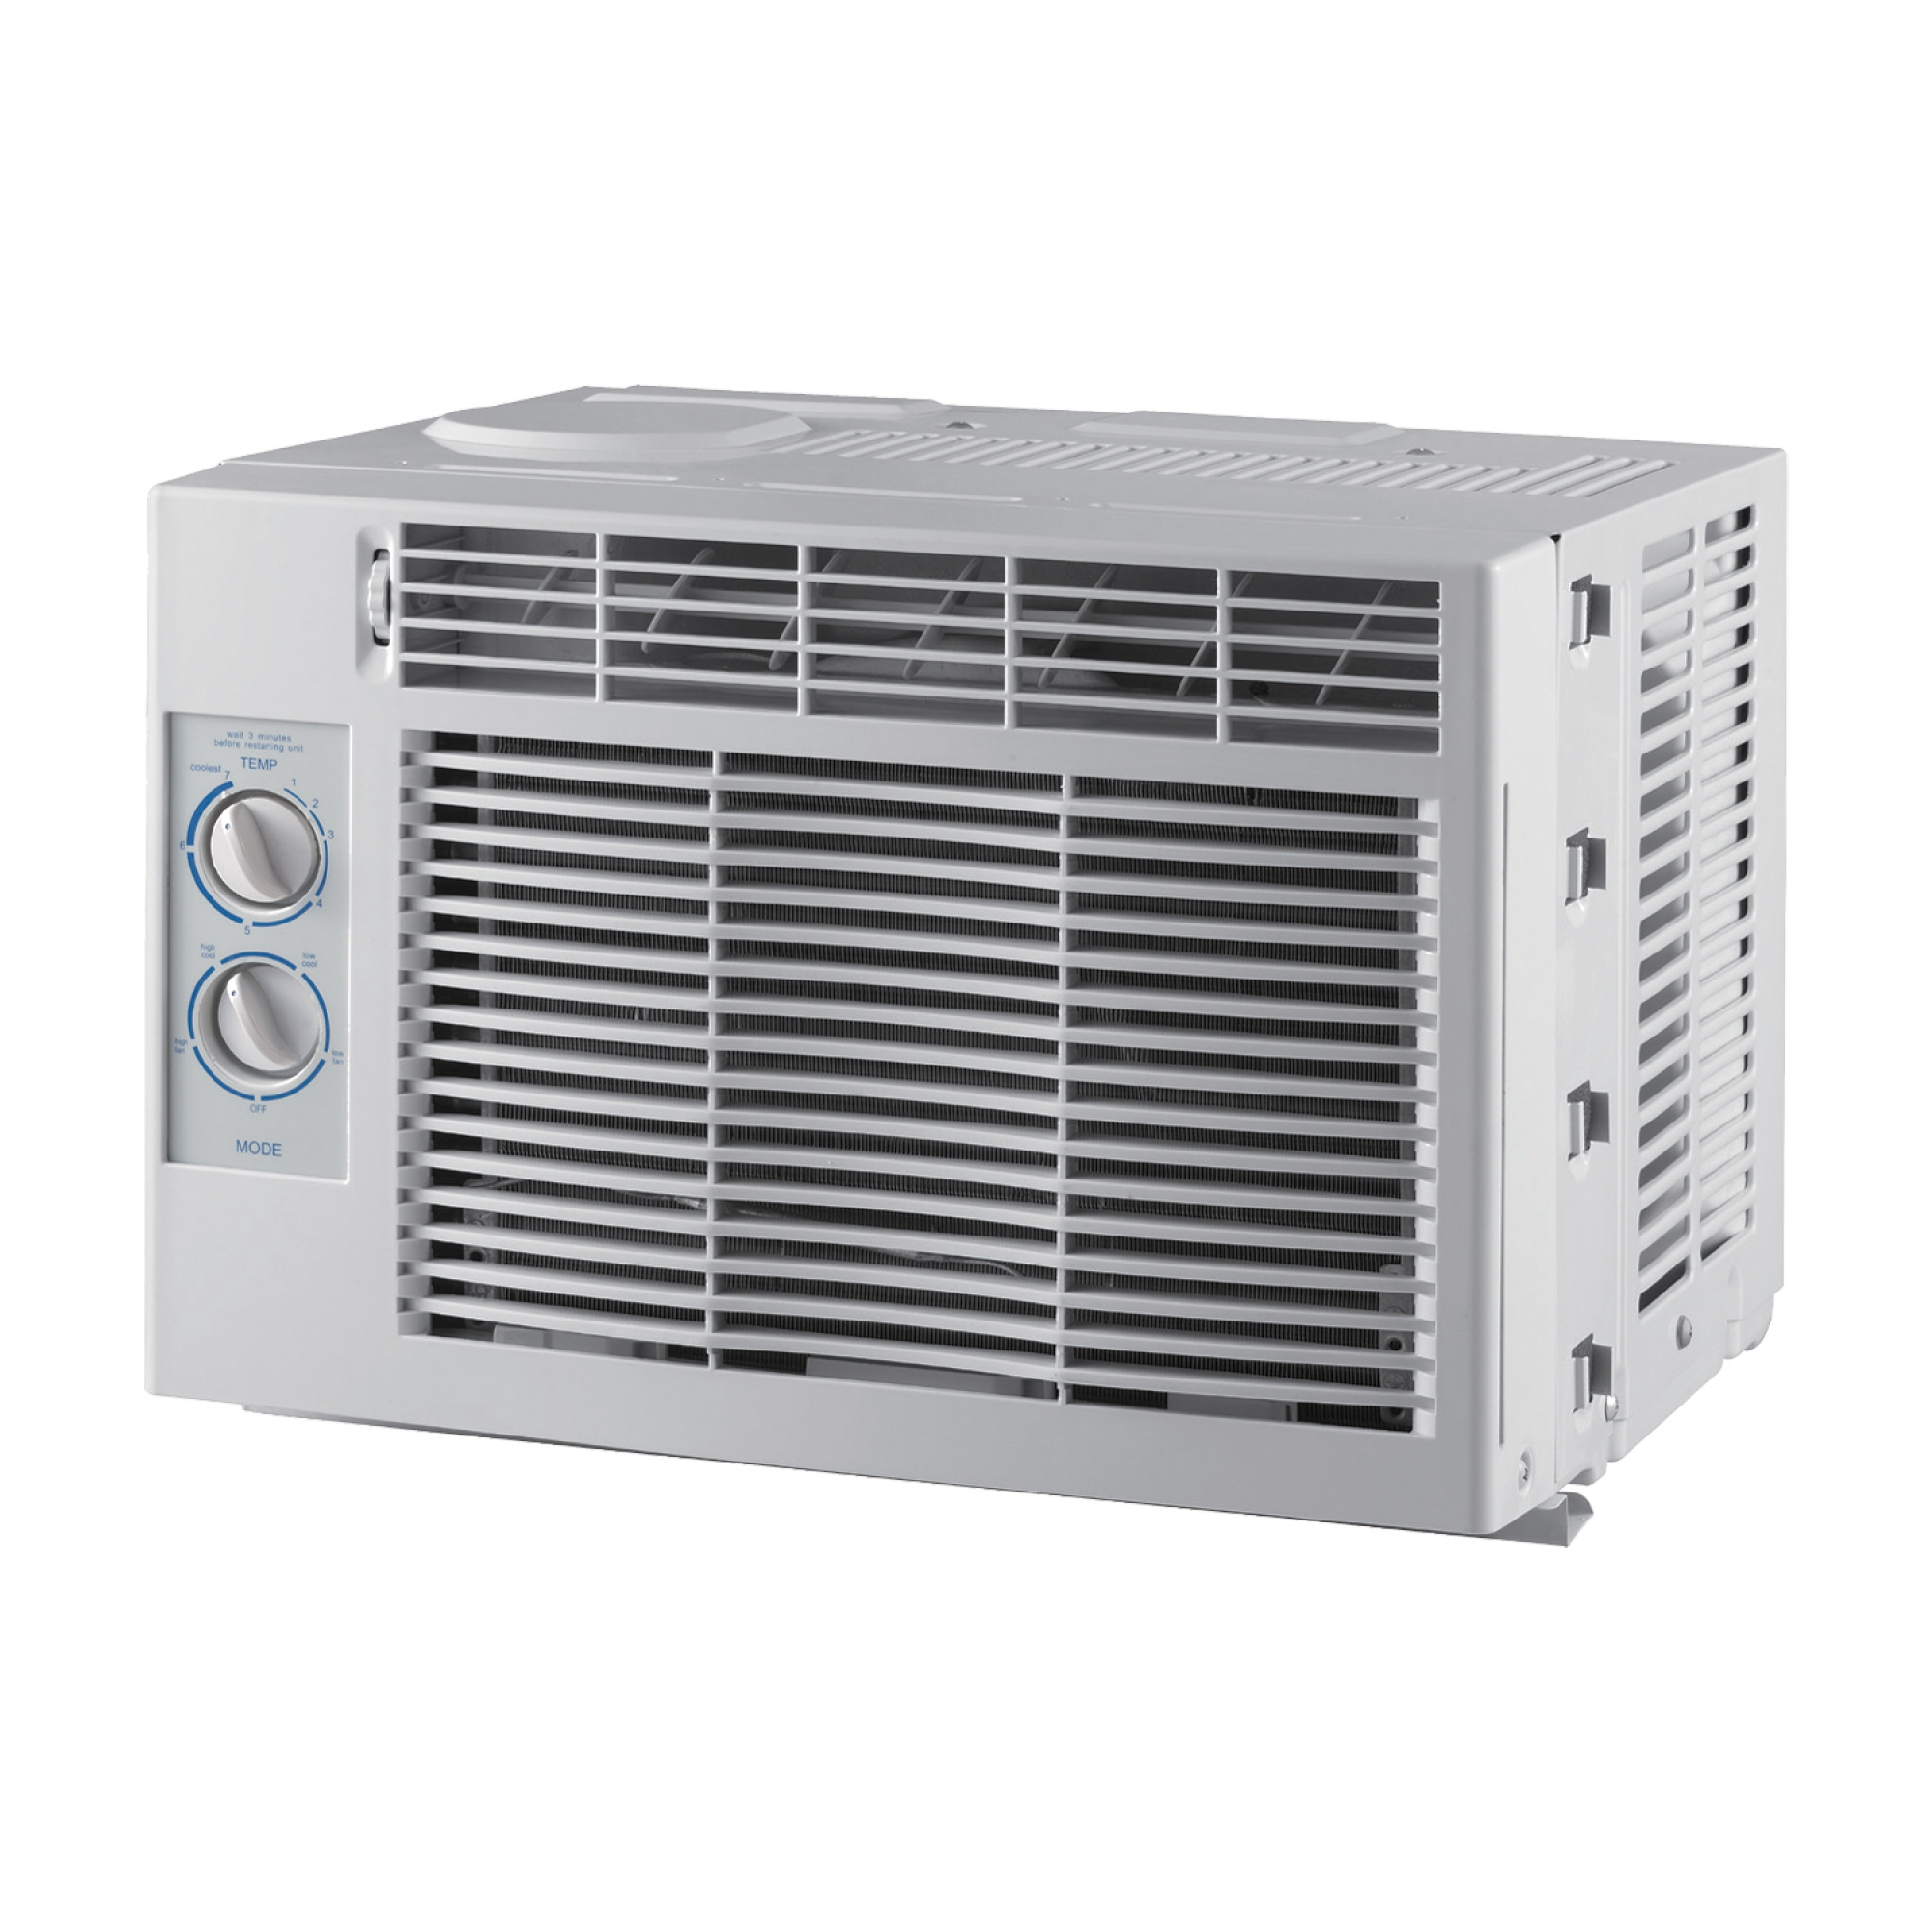 000 BTU H Mechanical Controlled Mini Window Air Conditioner eBay #4C6278